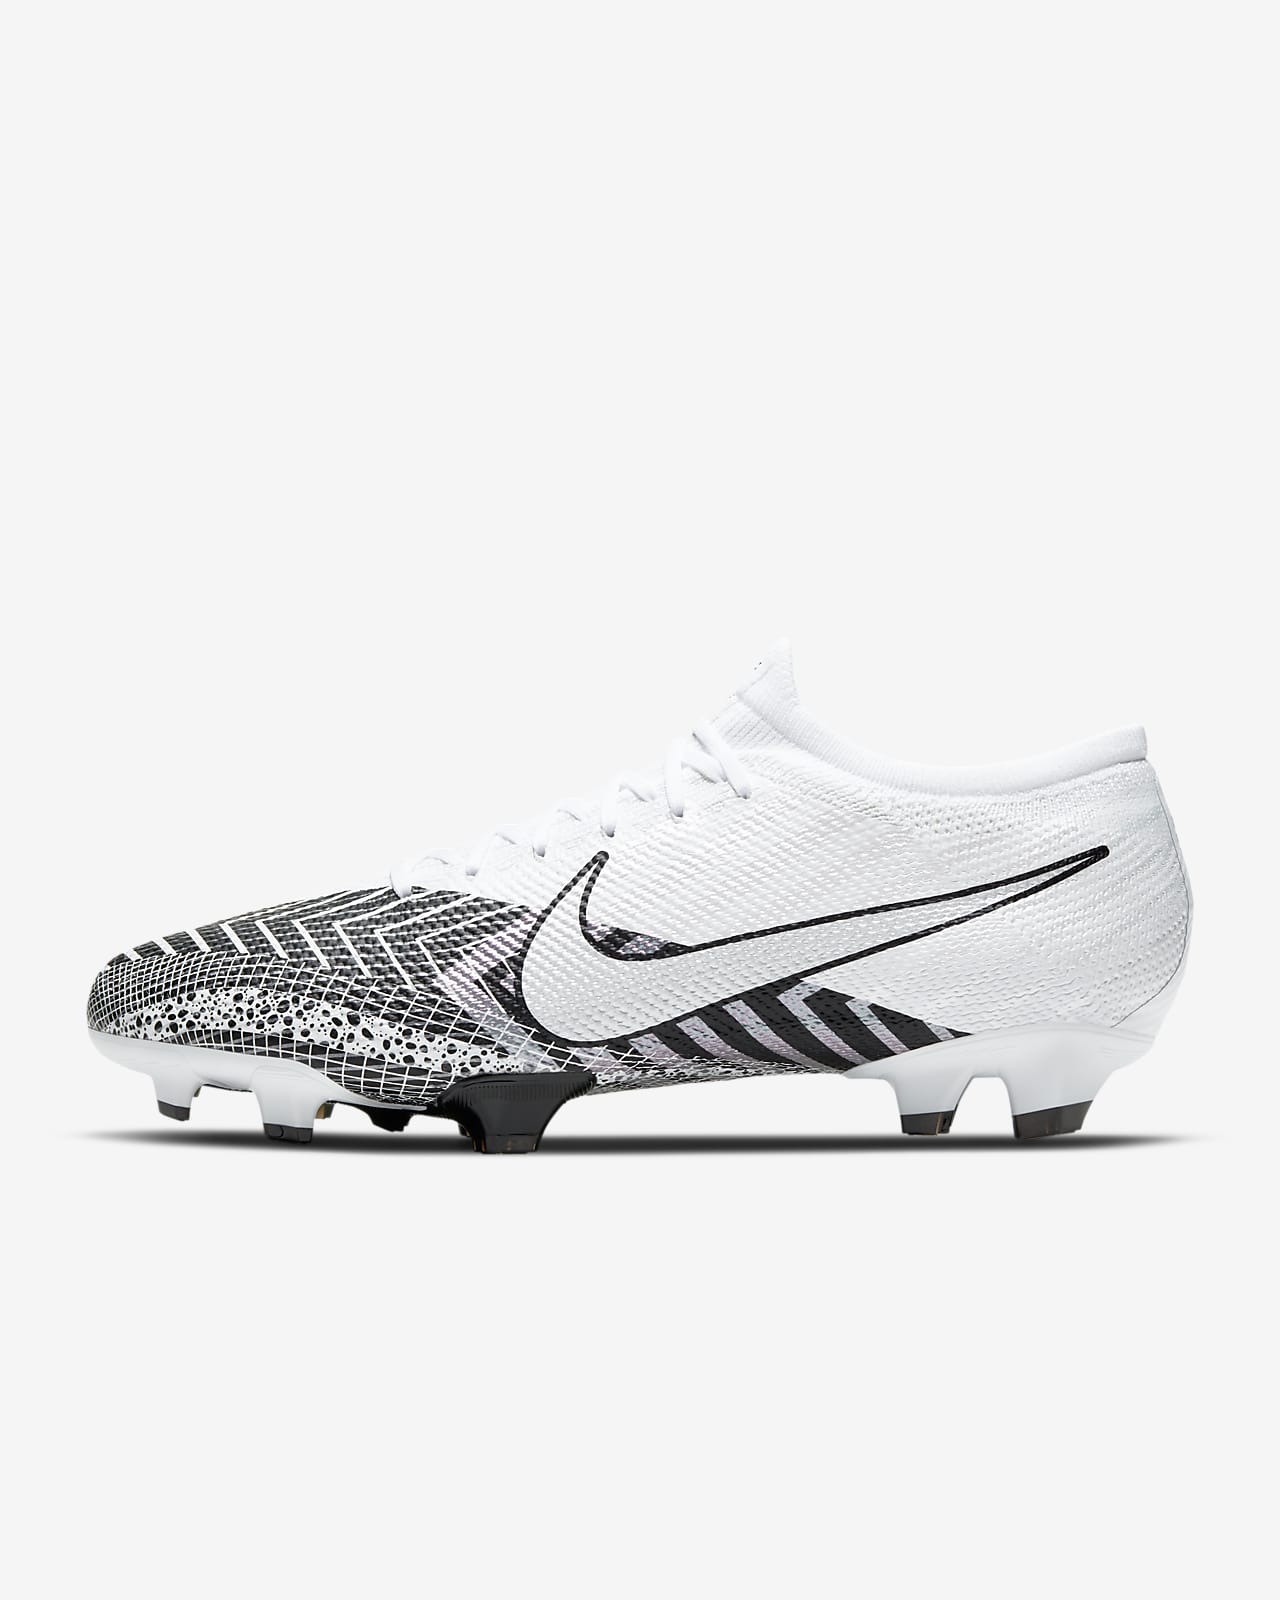 Orden alfabetico Natura Cerebro  Nike Mercurial Vapor 13 Pro MDS FG Firm-Ground Soccer Cleat. Nike.com